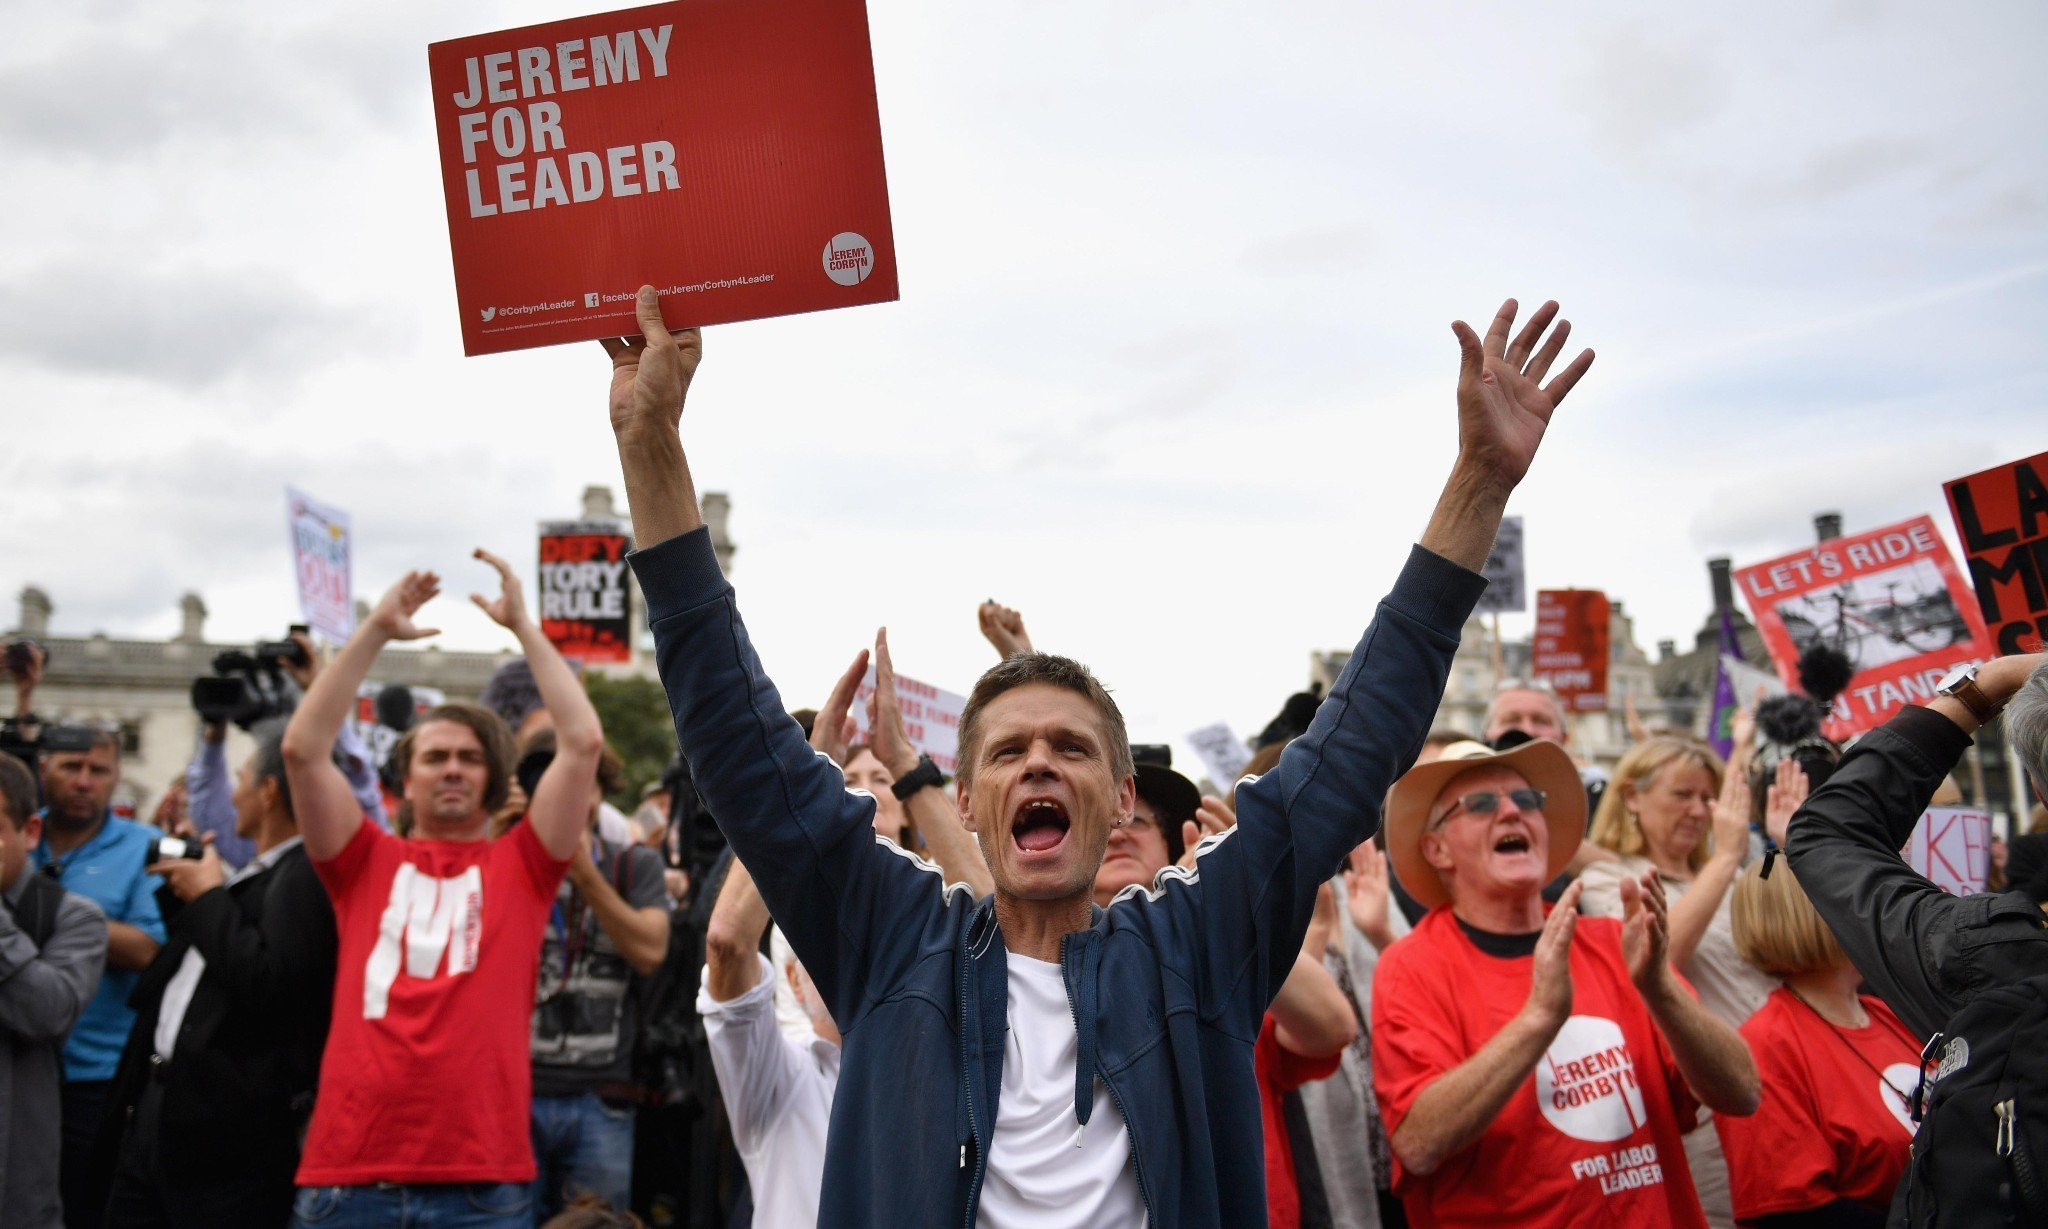 Corbyn supporters are not delusional Leninists but ordinary, fed-up voters